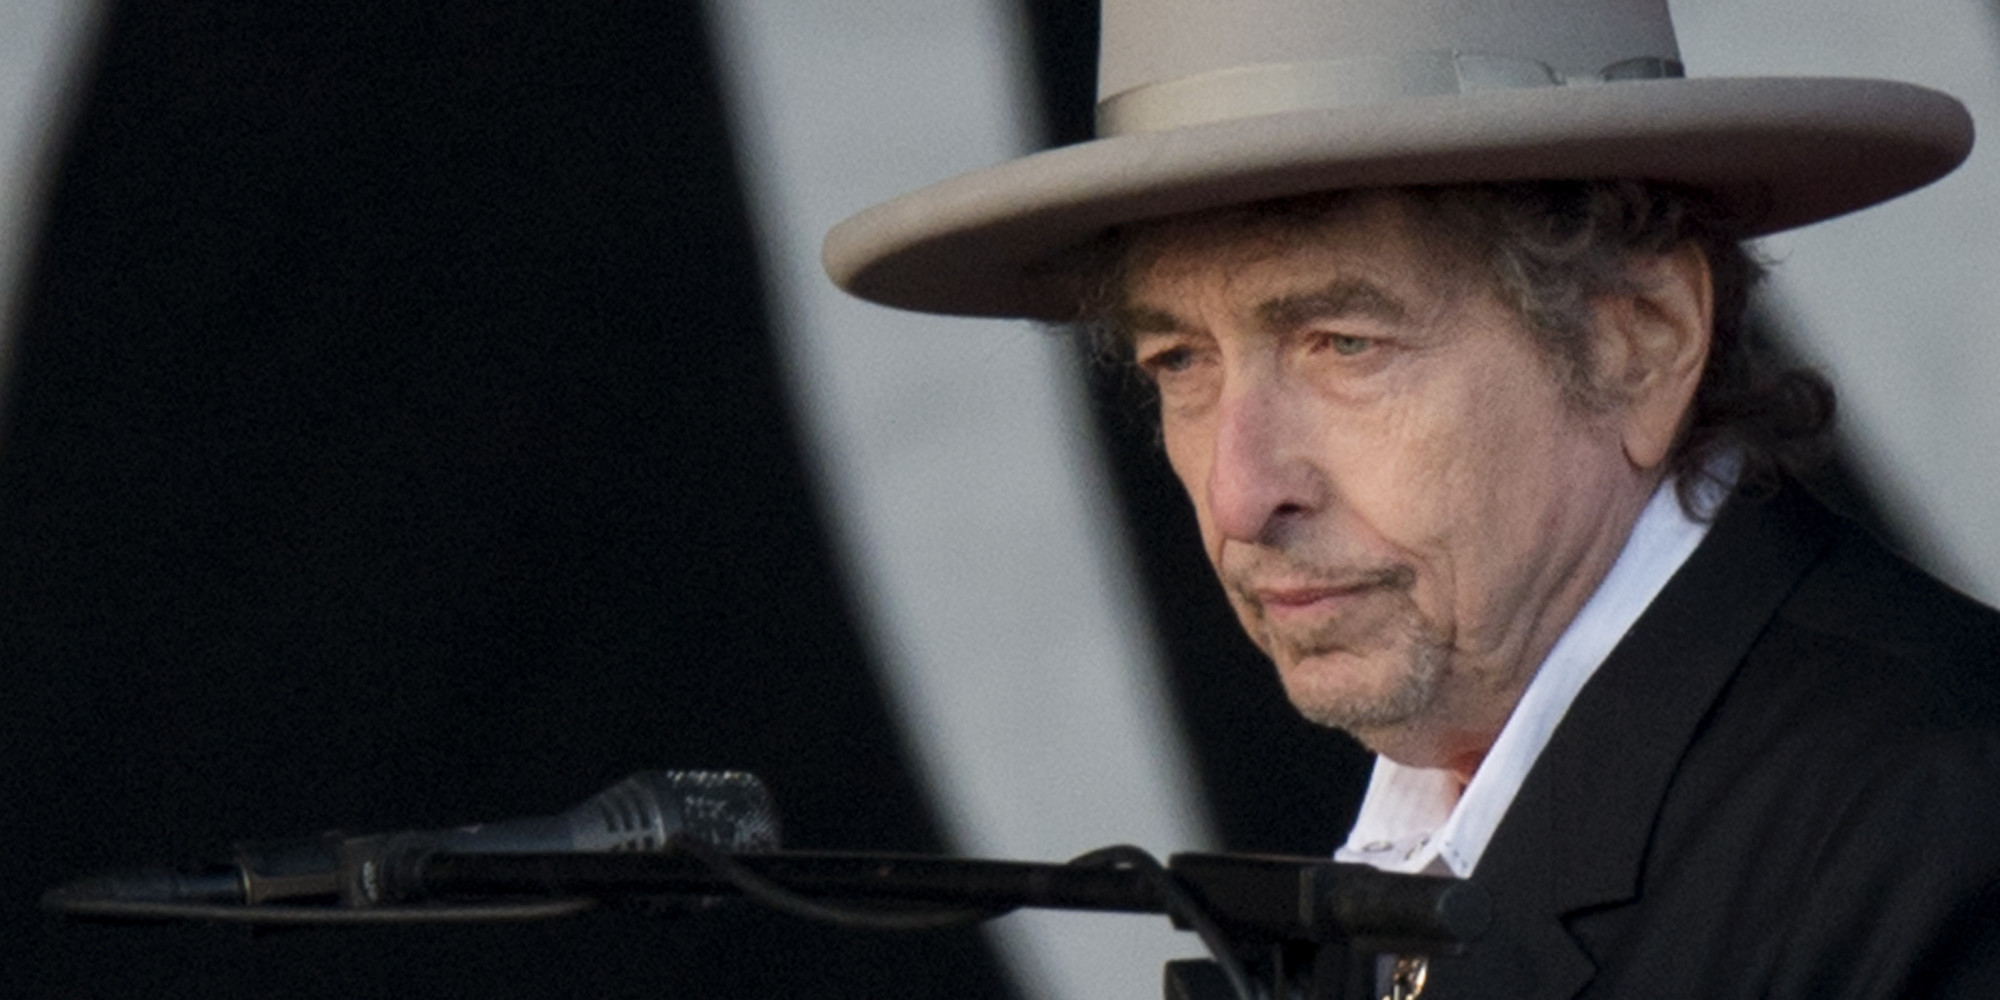 US musician Bob Dylan performs during the second day of the Hop Farm music festival in Paddock Wood, Kent, on June 30, 2012. AFP PHOTO / BEN STANSALL (Photo credit should read BEN STANSALL/AFP/GettyImages)